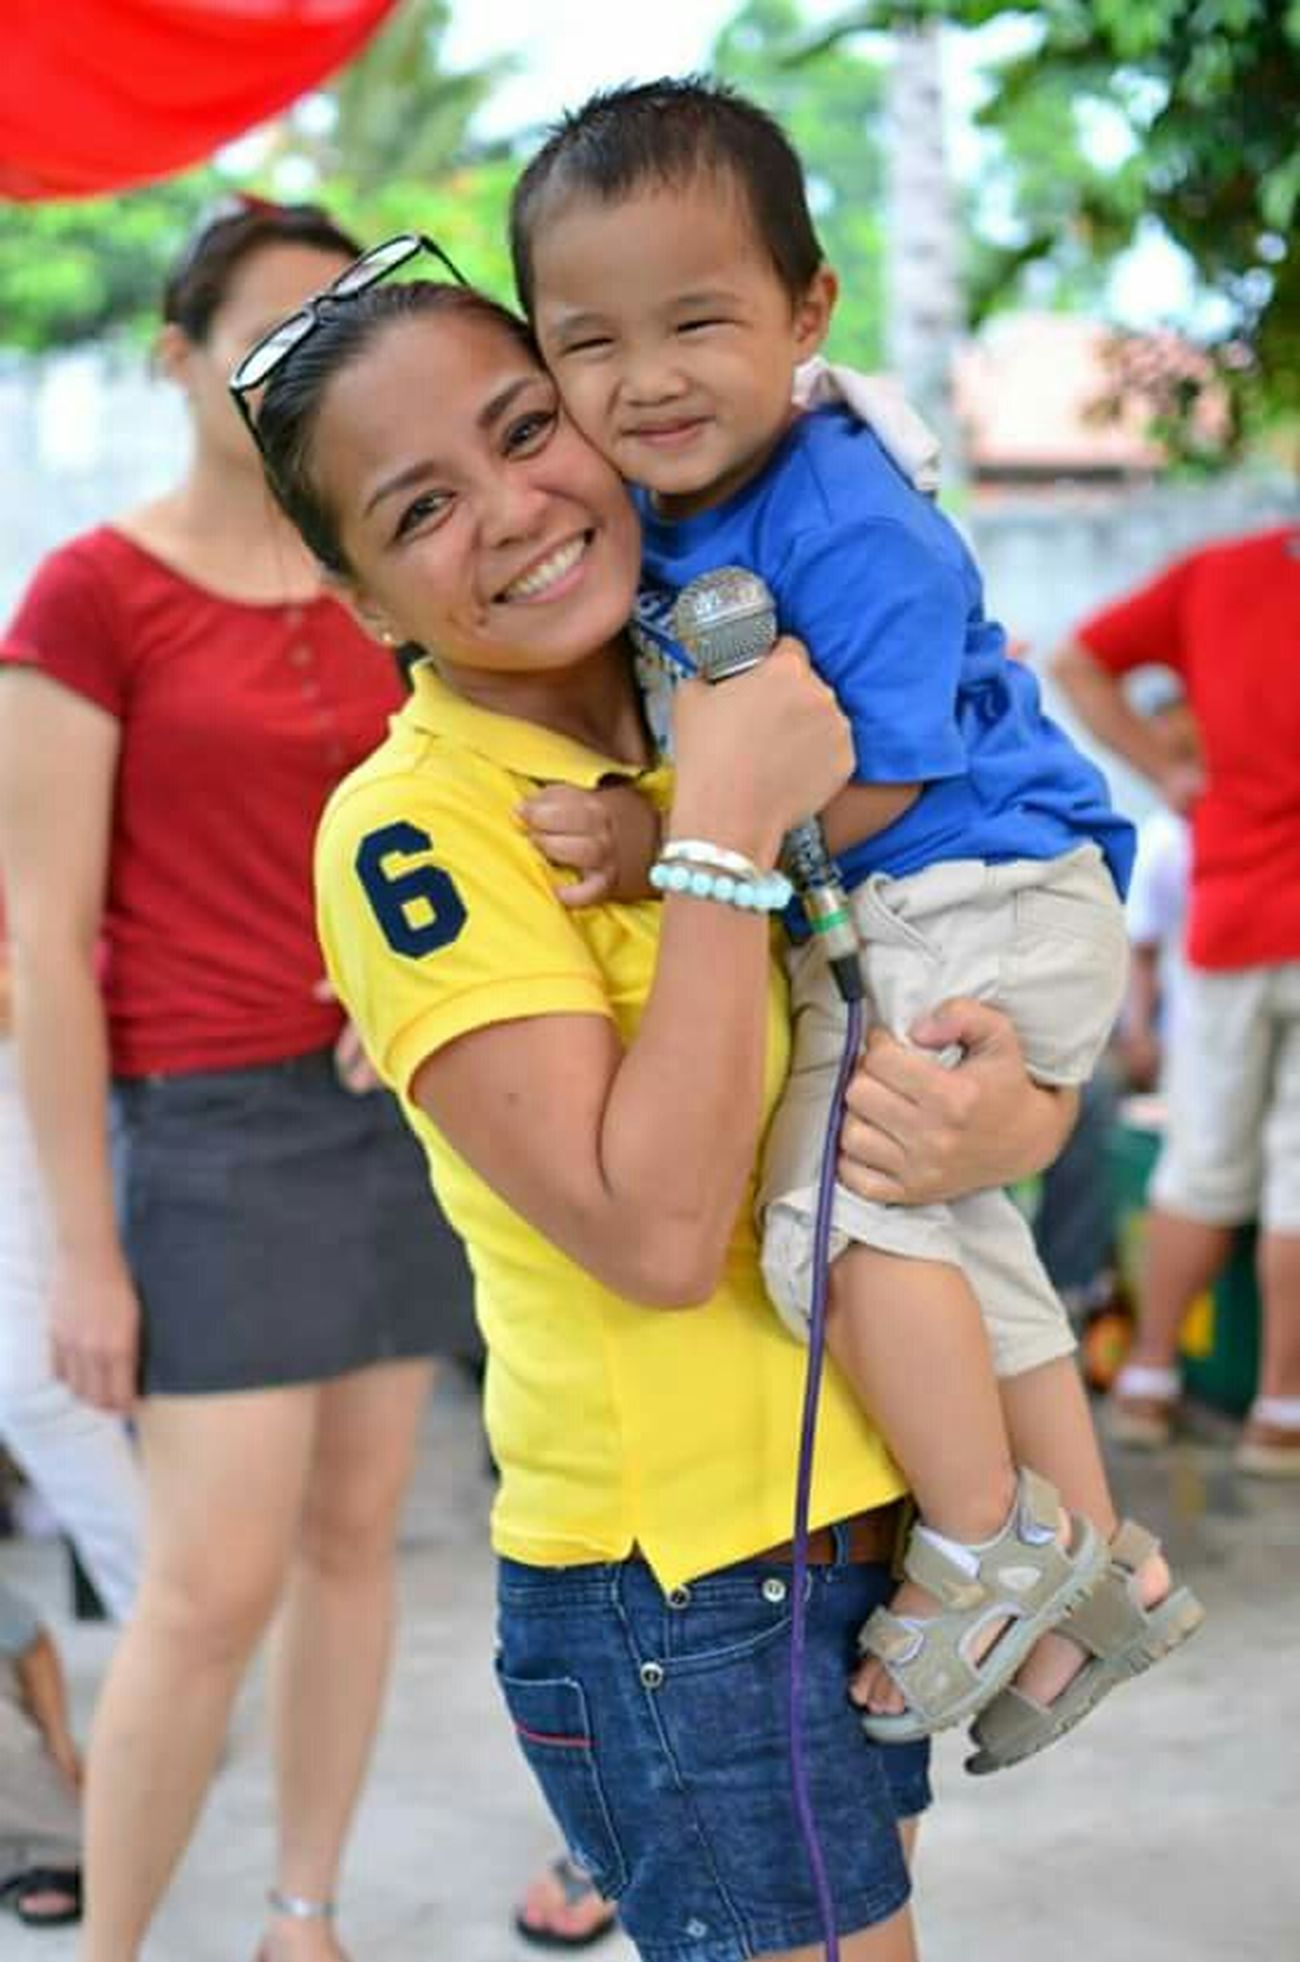 RePicture Motherhood Nanay Nanaynibuhawi Love Motherandchild Babylove Motherhood Joysofmotherhood Myhappiness